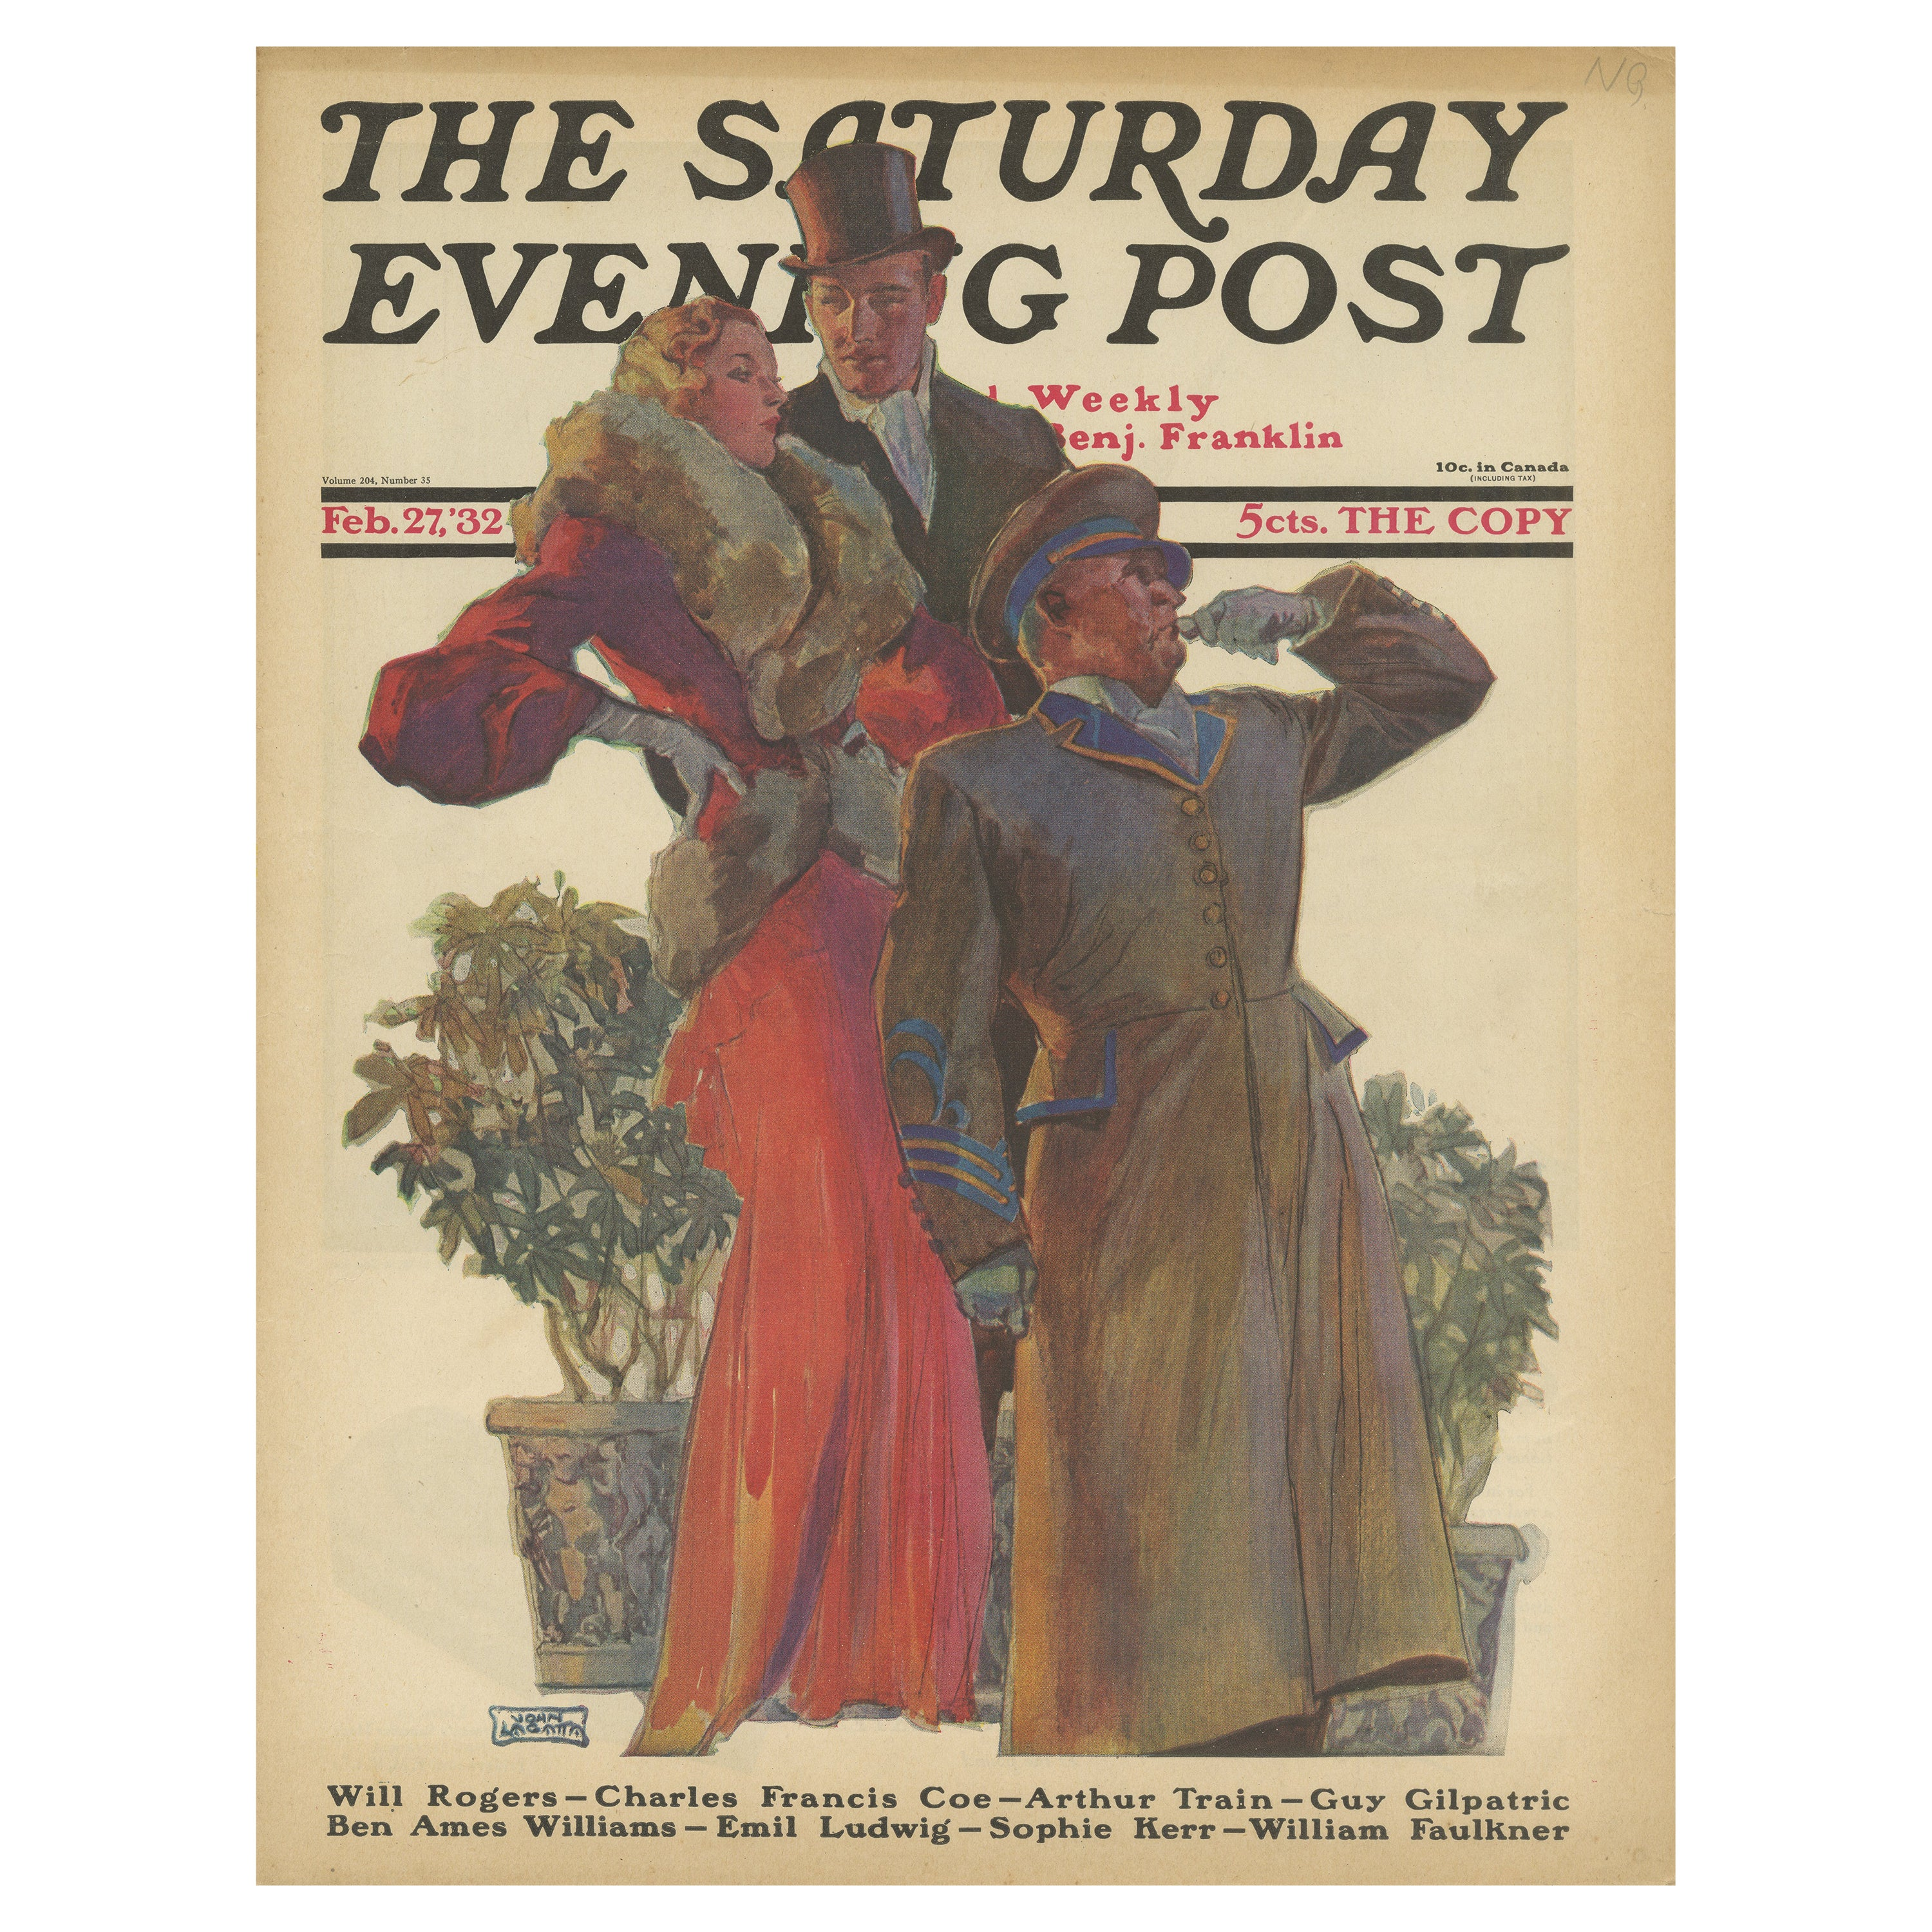 Vintage Print of a Couple Waiting for a Taxi 'The Saturday Evening Post' '1932'